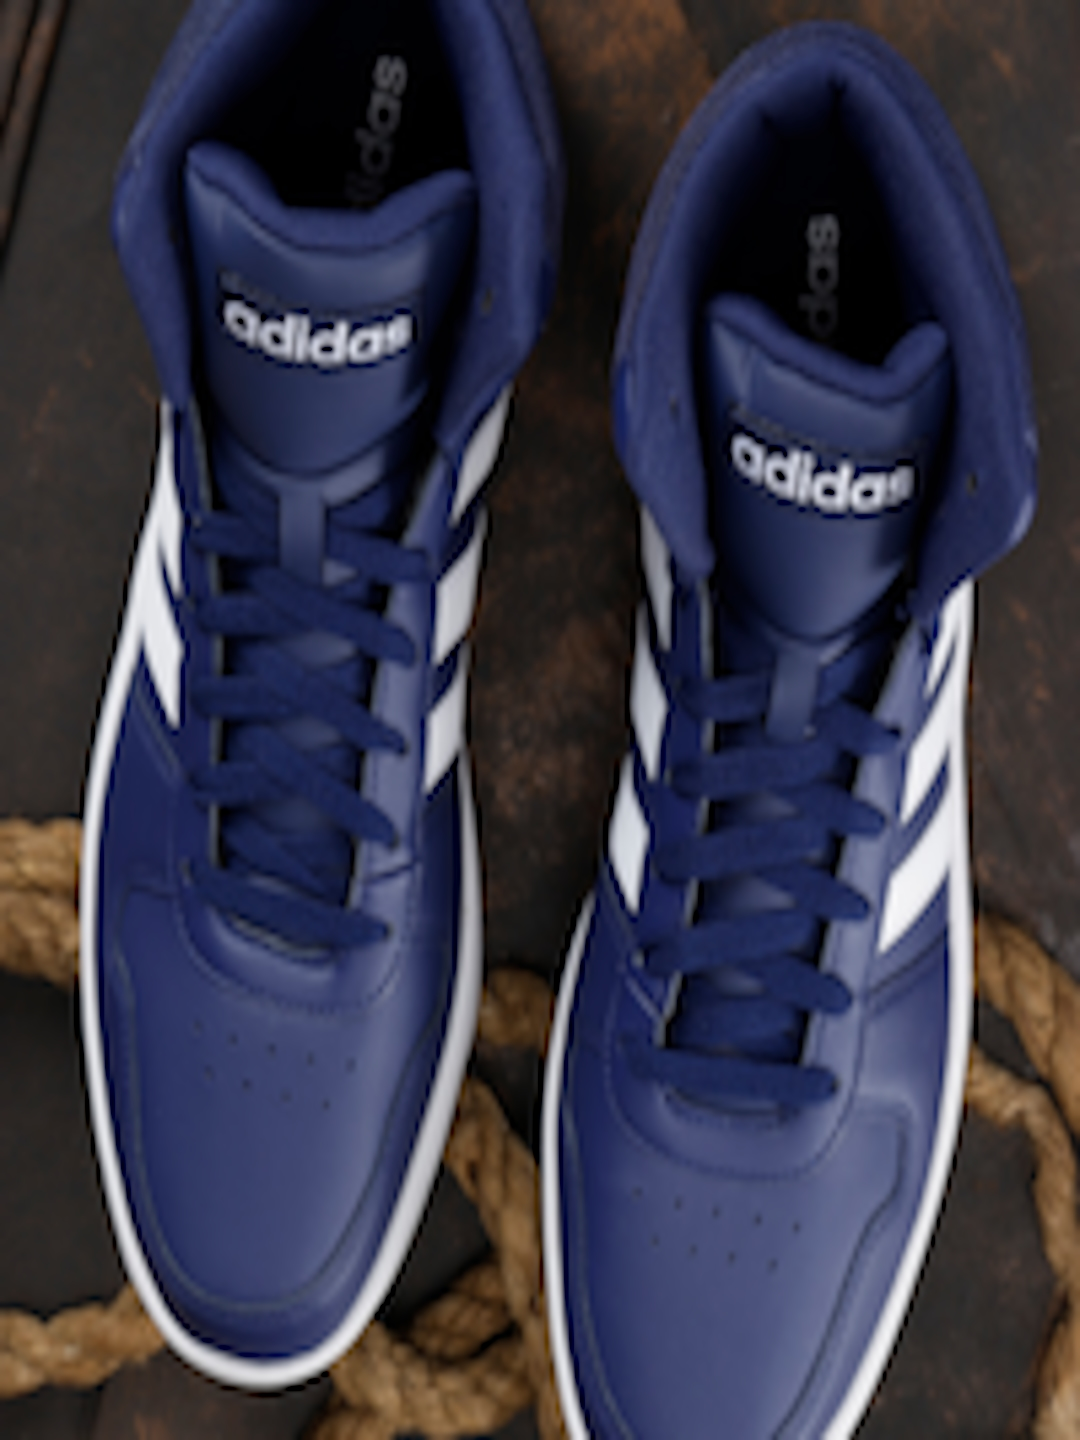 8cefaaa8f06e89 Buy ADIDAS Men Navy Blue Hoops 2.0 Mid Basketball Shoes - Sports Shoes for  Men 6841772